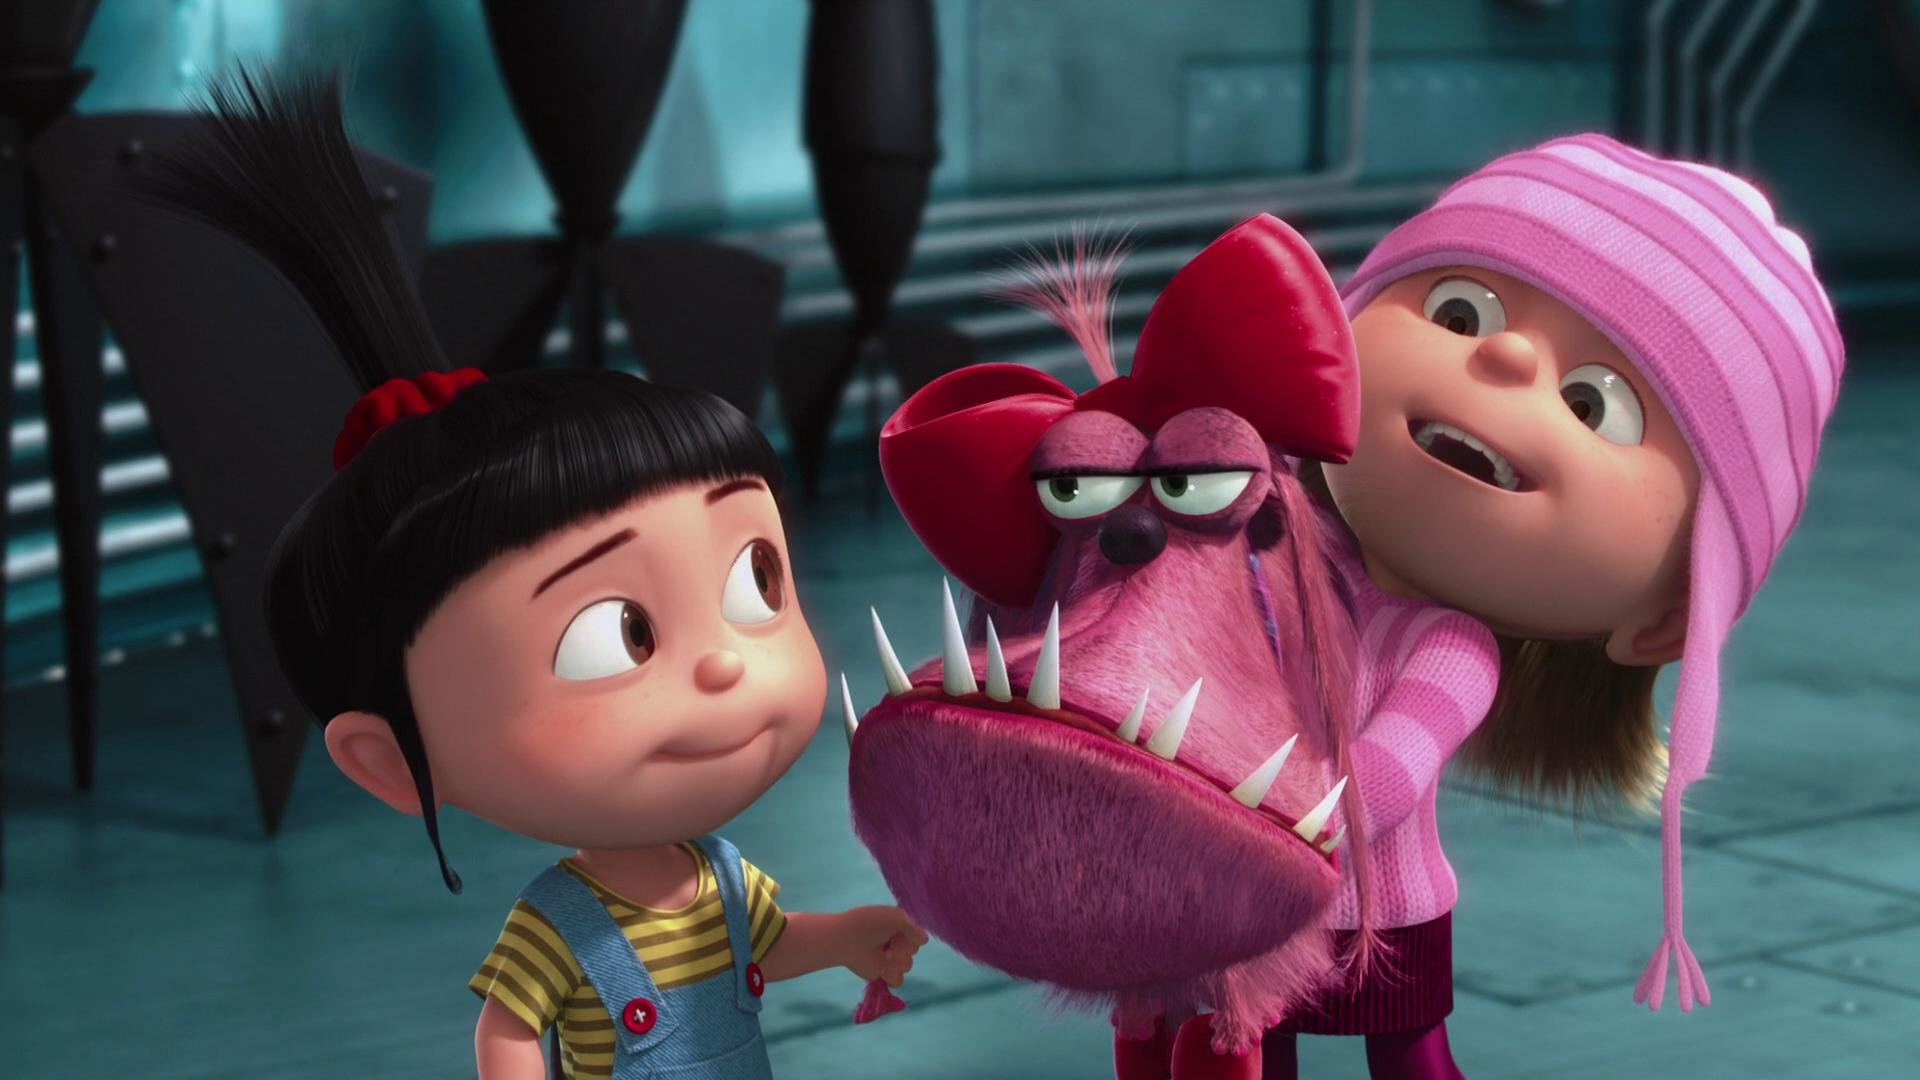 Agnes (Despicable Me) wallpapers HD for desktop backgrounds